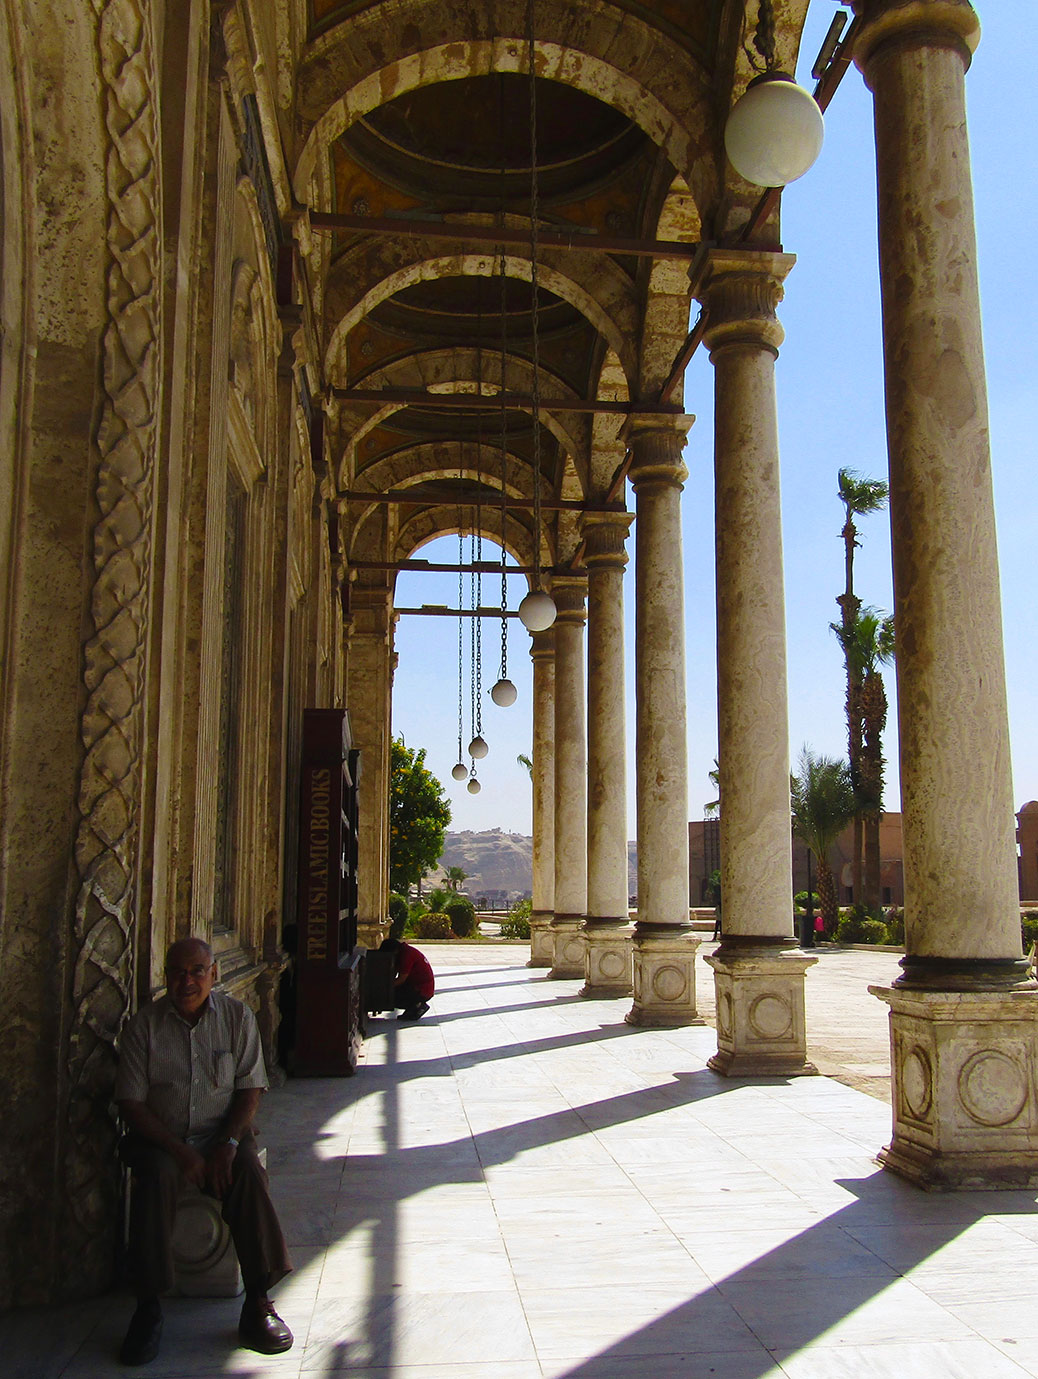 Corridor of arches along the exterior of the mosque.